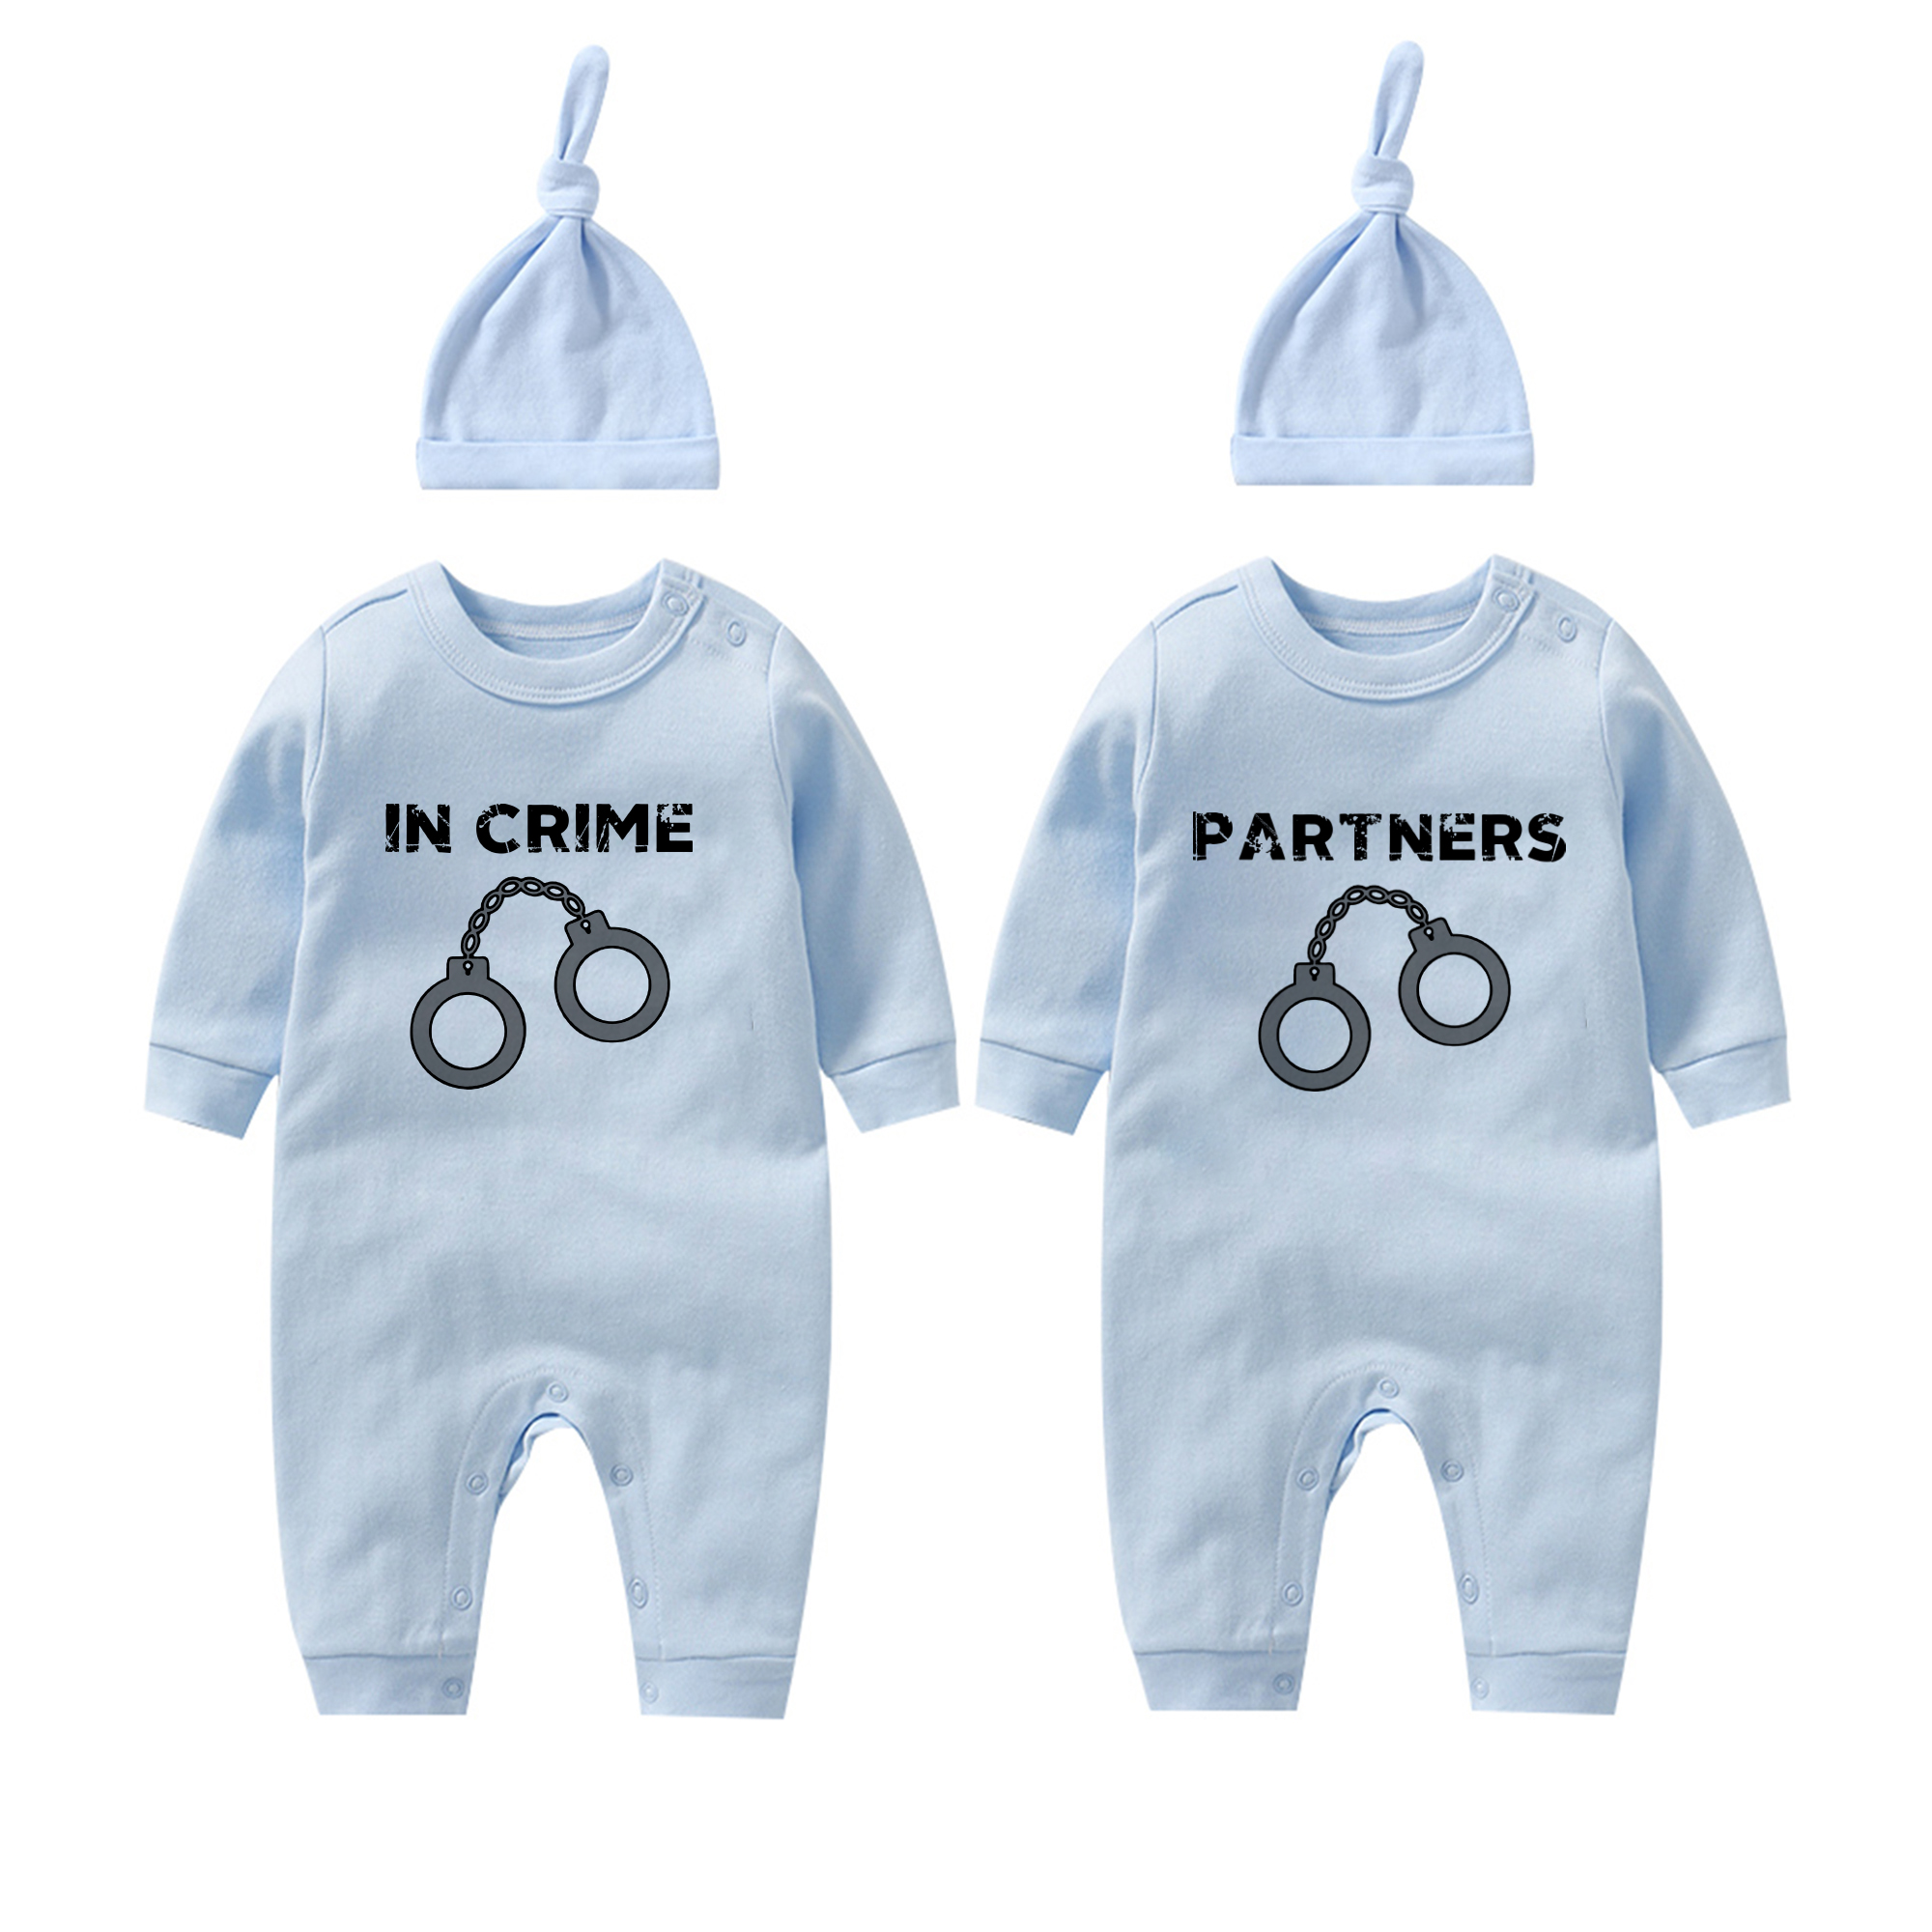 Funny Baby Shirts,Twin infant bodysuit Funny Baby Clothes PARTNERS IN CRIME Funny Infant bodysuit